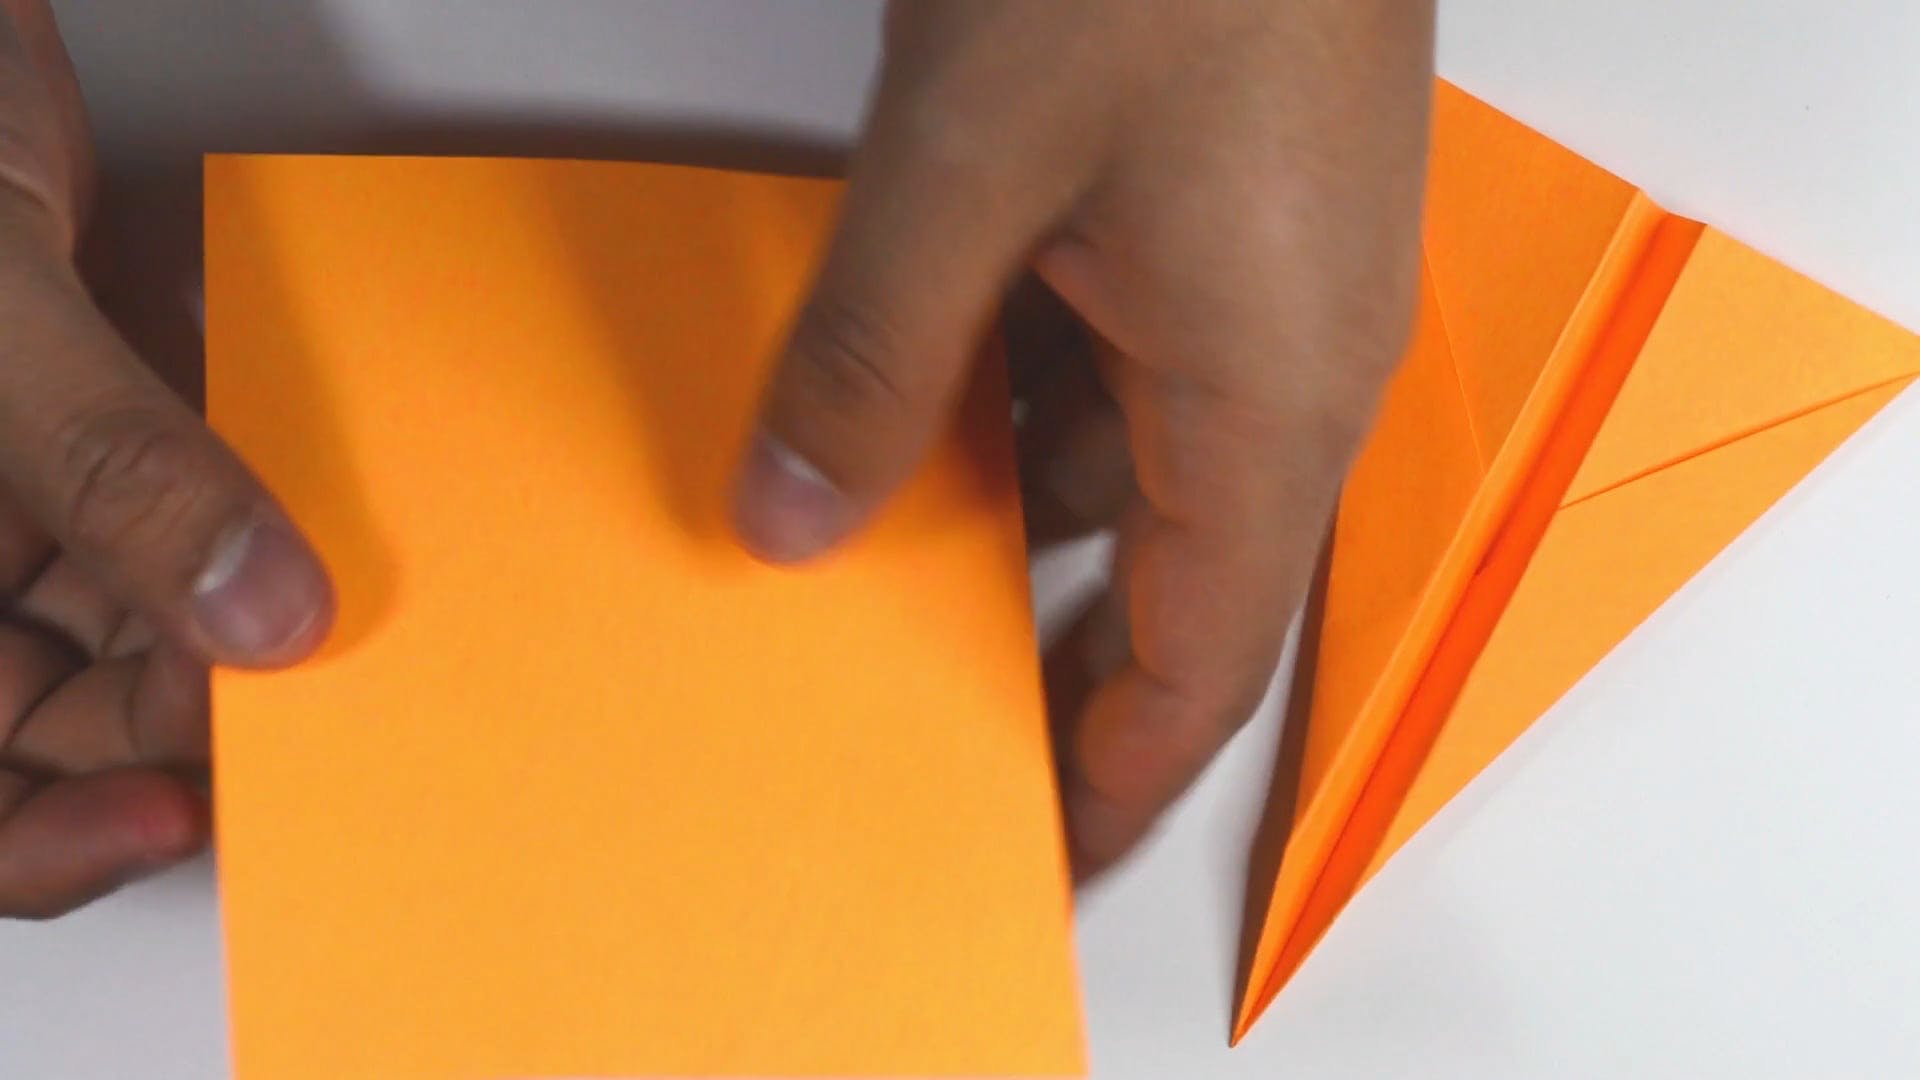 The Art Of Making A Paper Plane